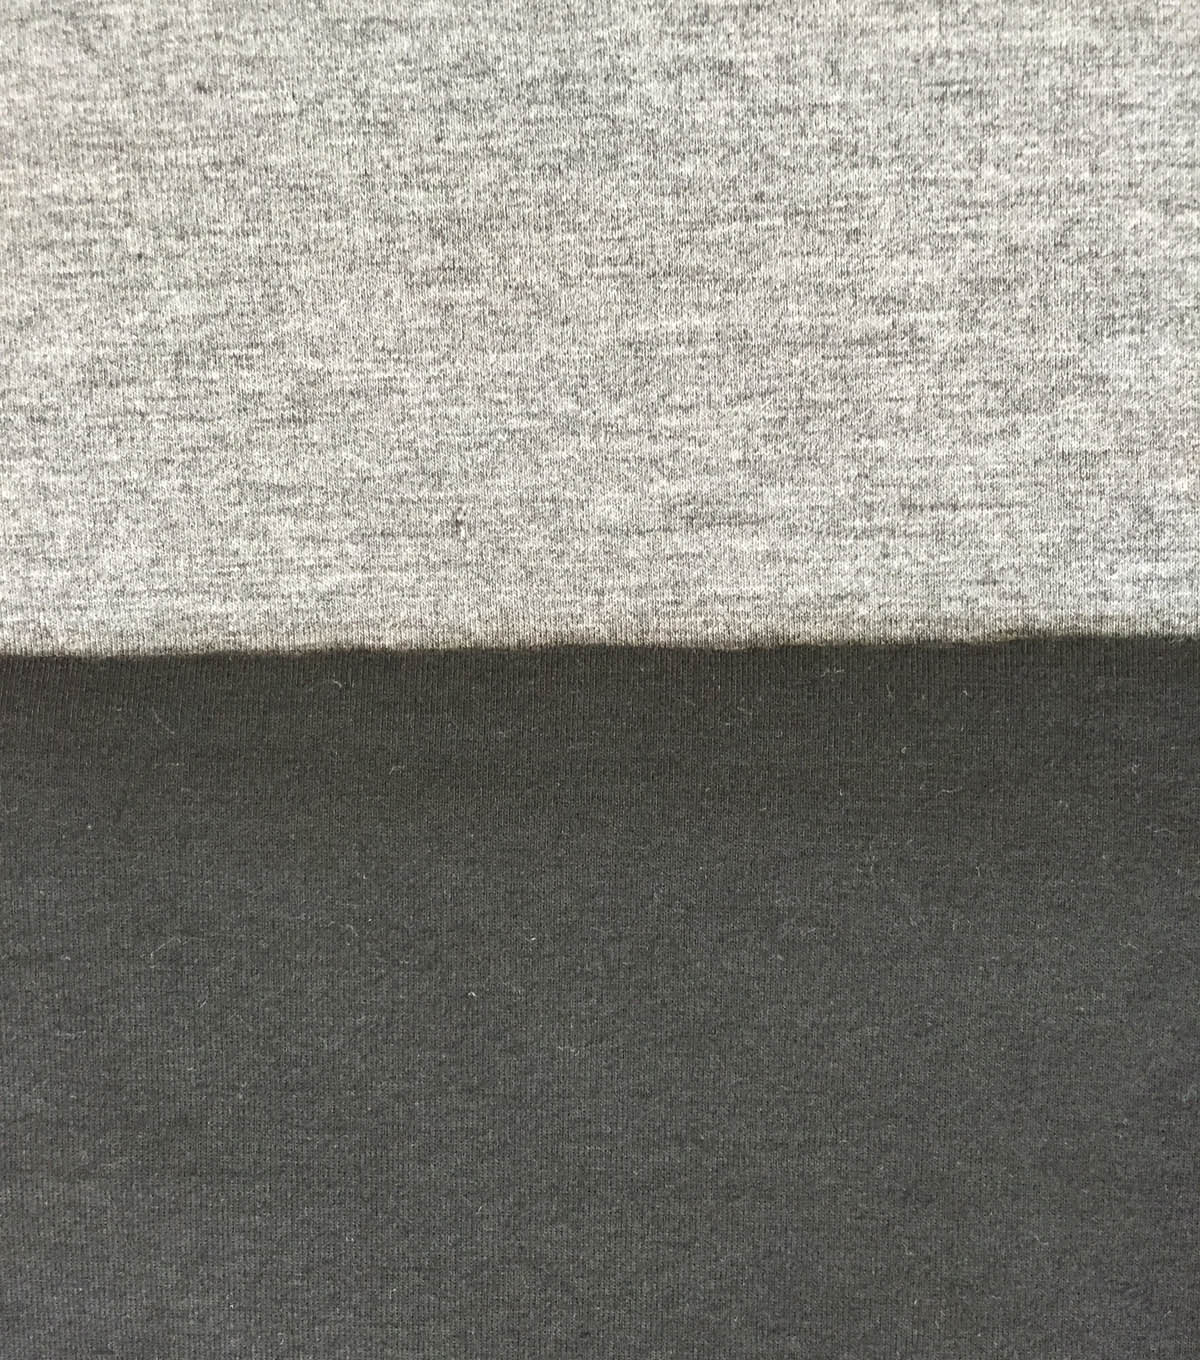 Reversible Knit Fabric -Grey & Black